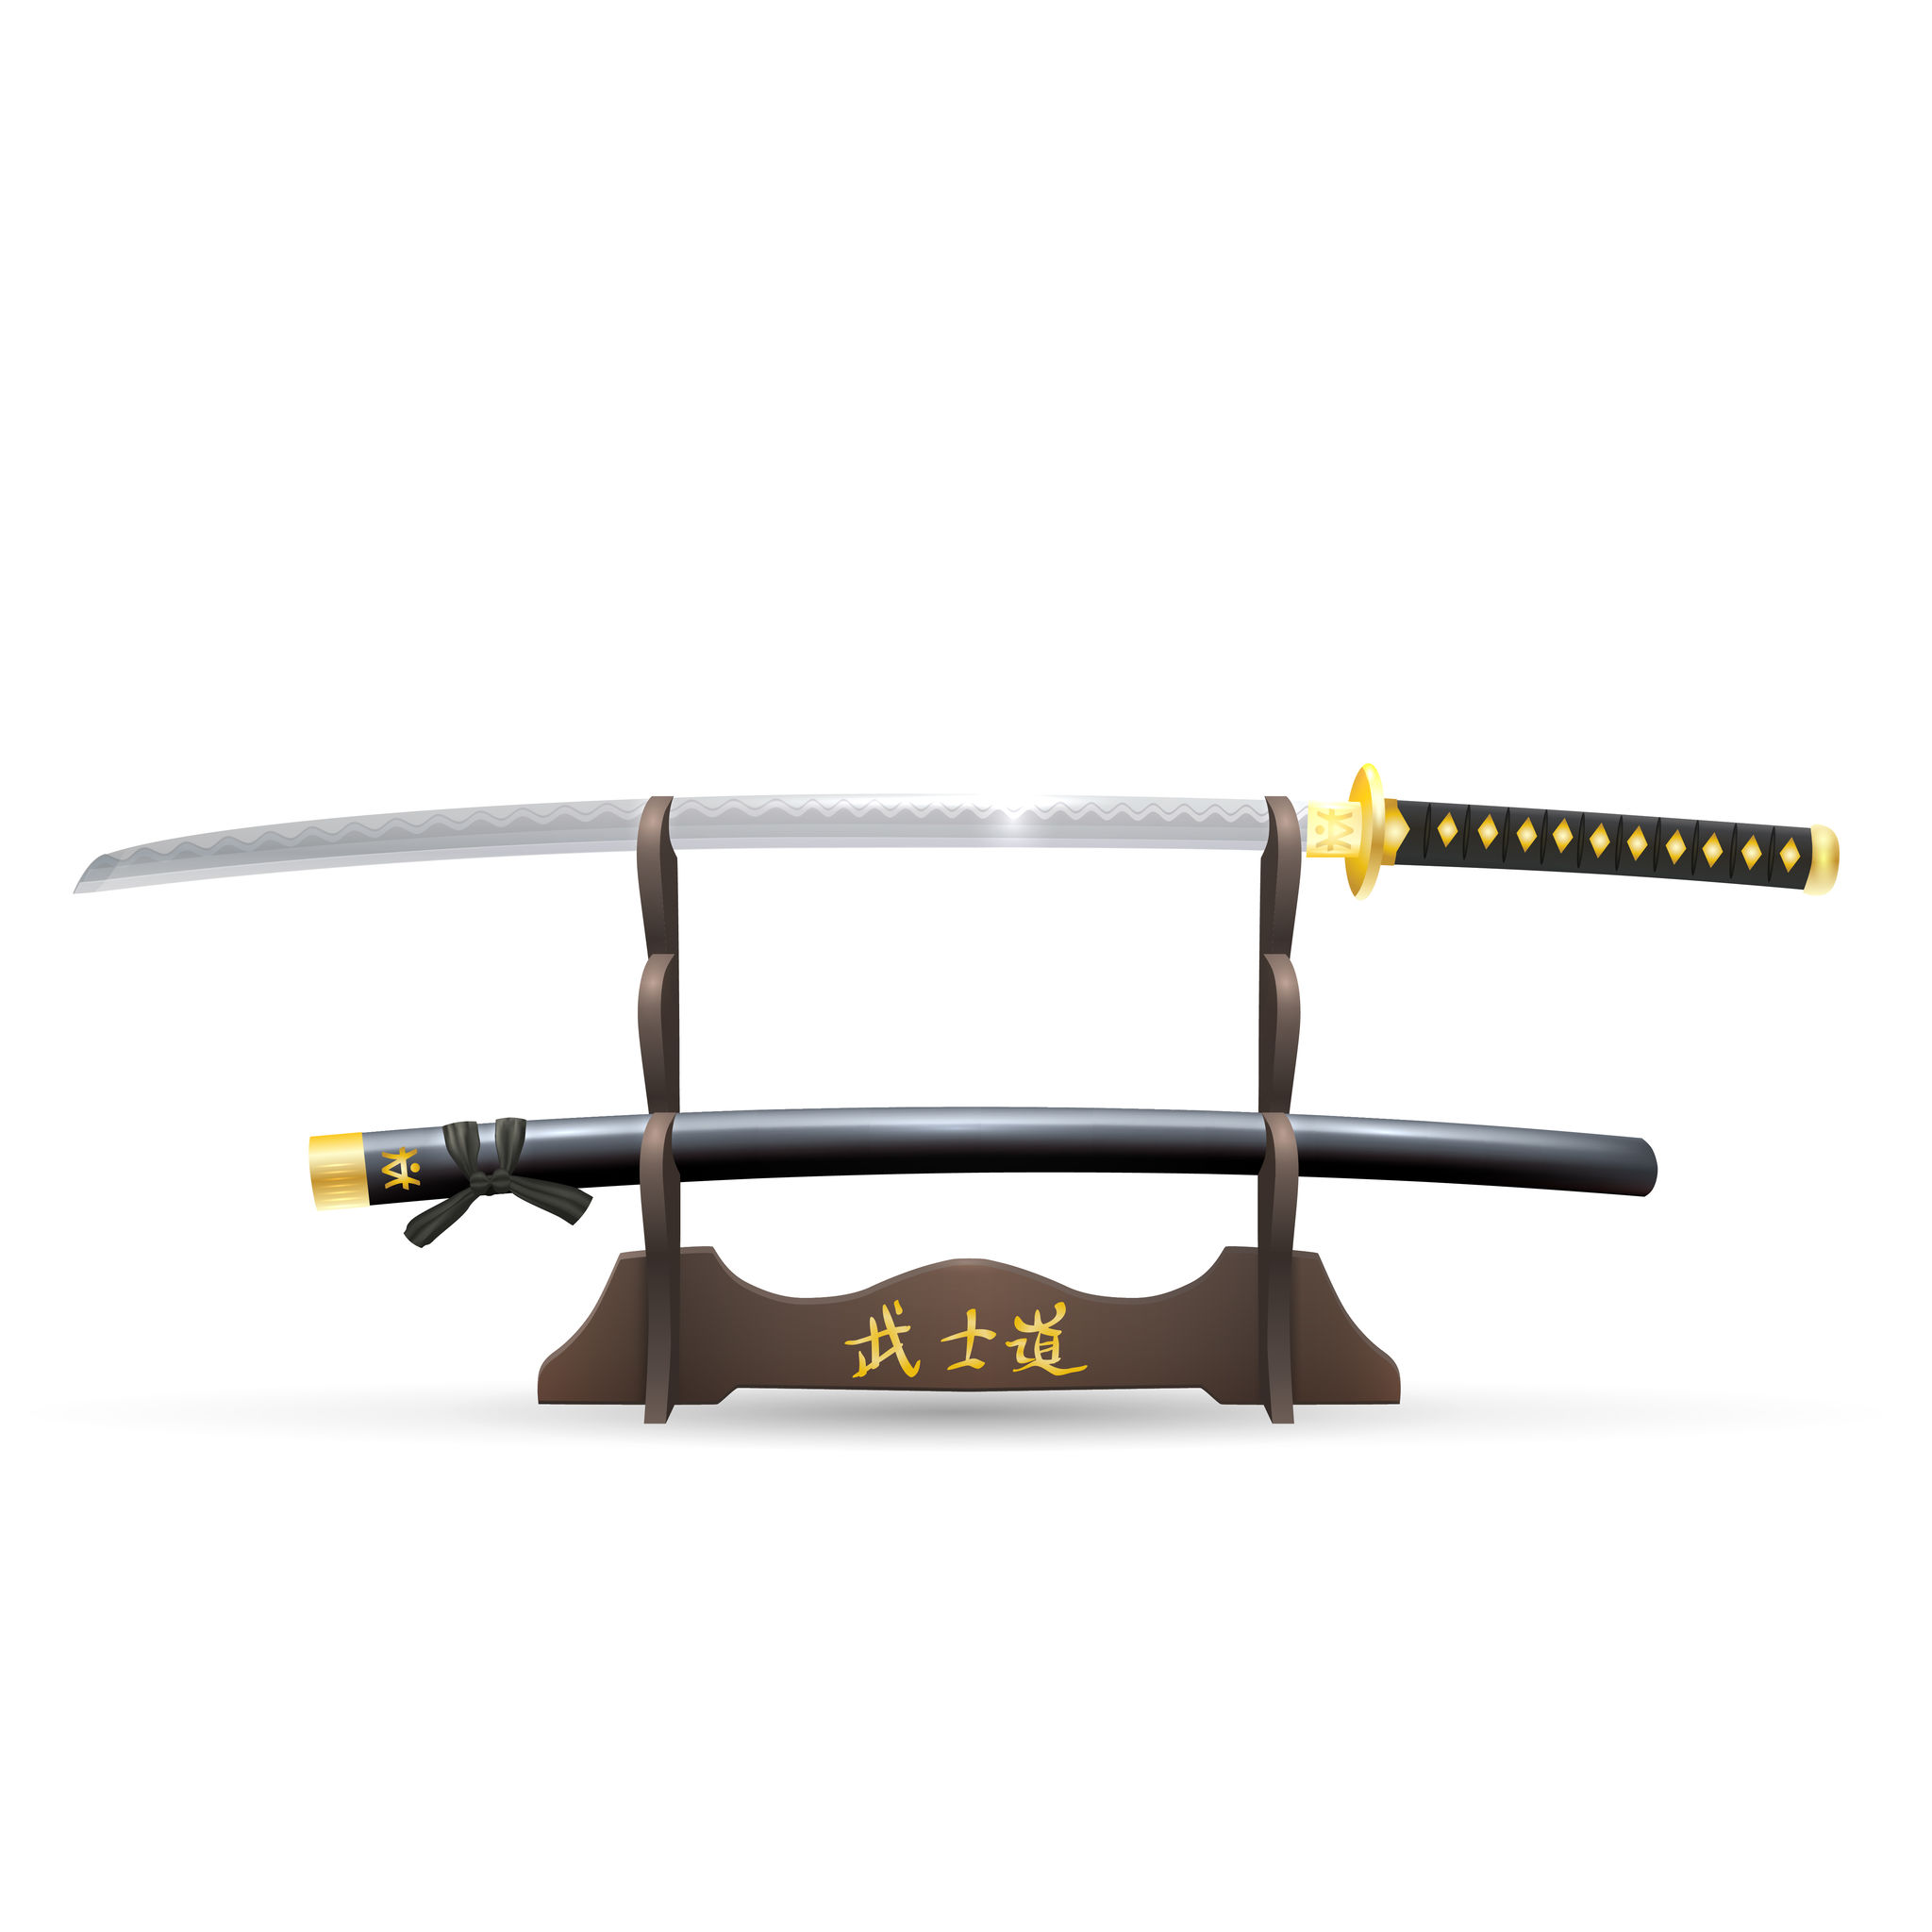 Realistic Samurai Sword and Scabbard on the Stand